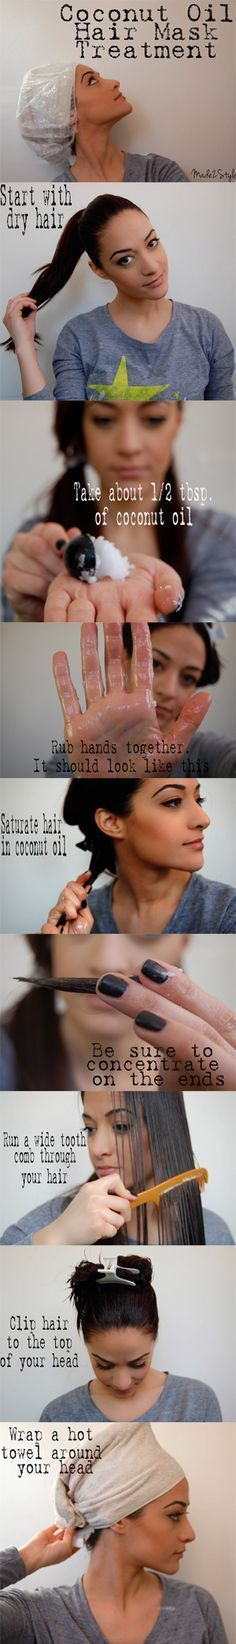 Coconut Oil Hair Mask. I will definitely need to try this!